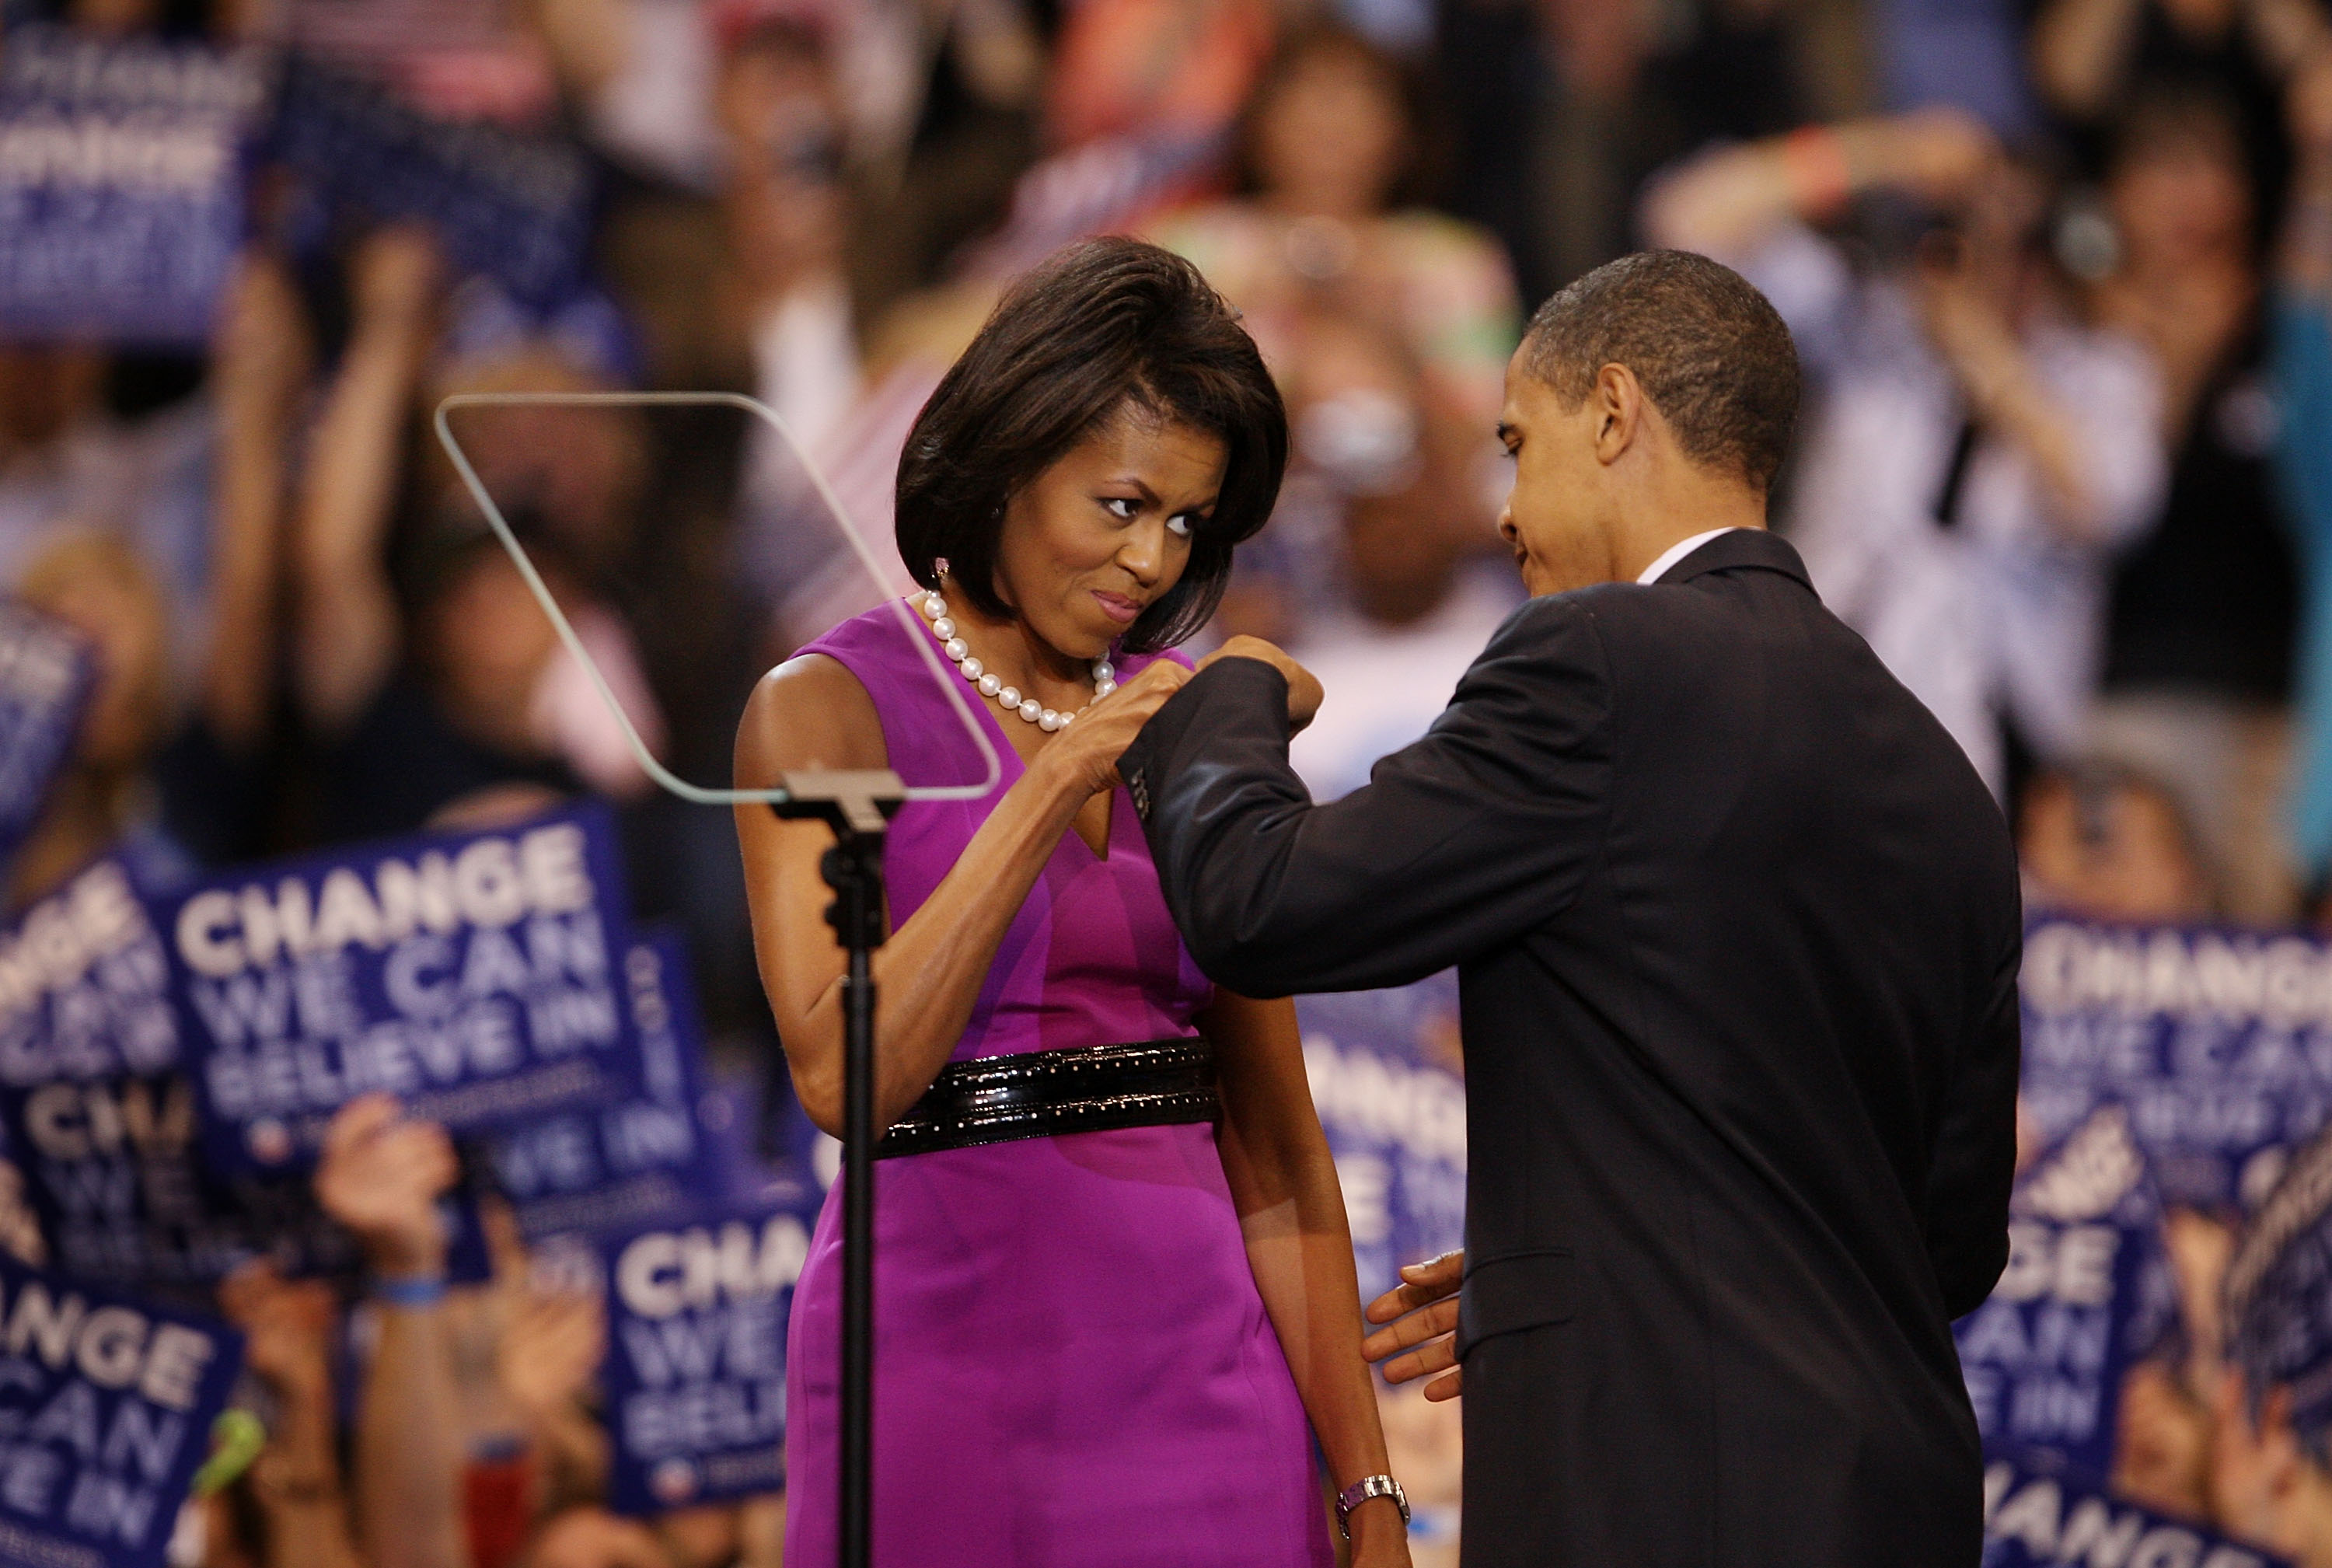 From right: U.S. President Barack Obama and First Lady Michelle Obama bump fists at an election night rally at the Xcel Energy Center on June 3, 2008 in St. Paul, Minn. during his first presidential campaign.